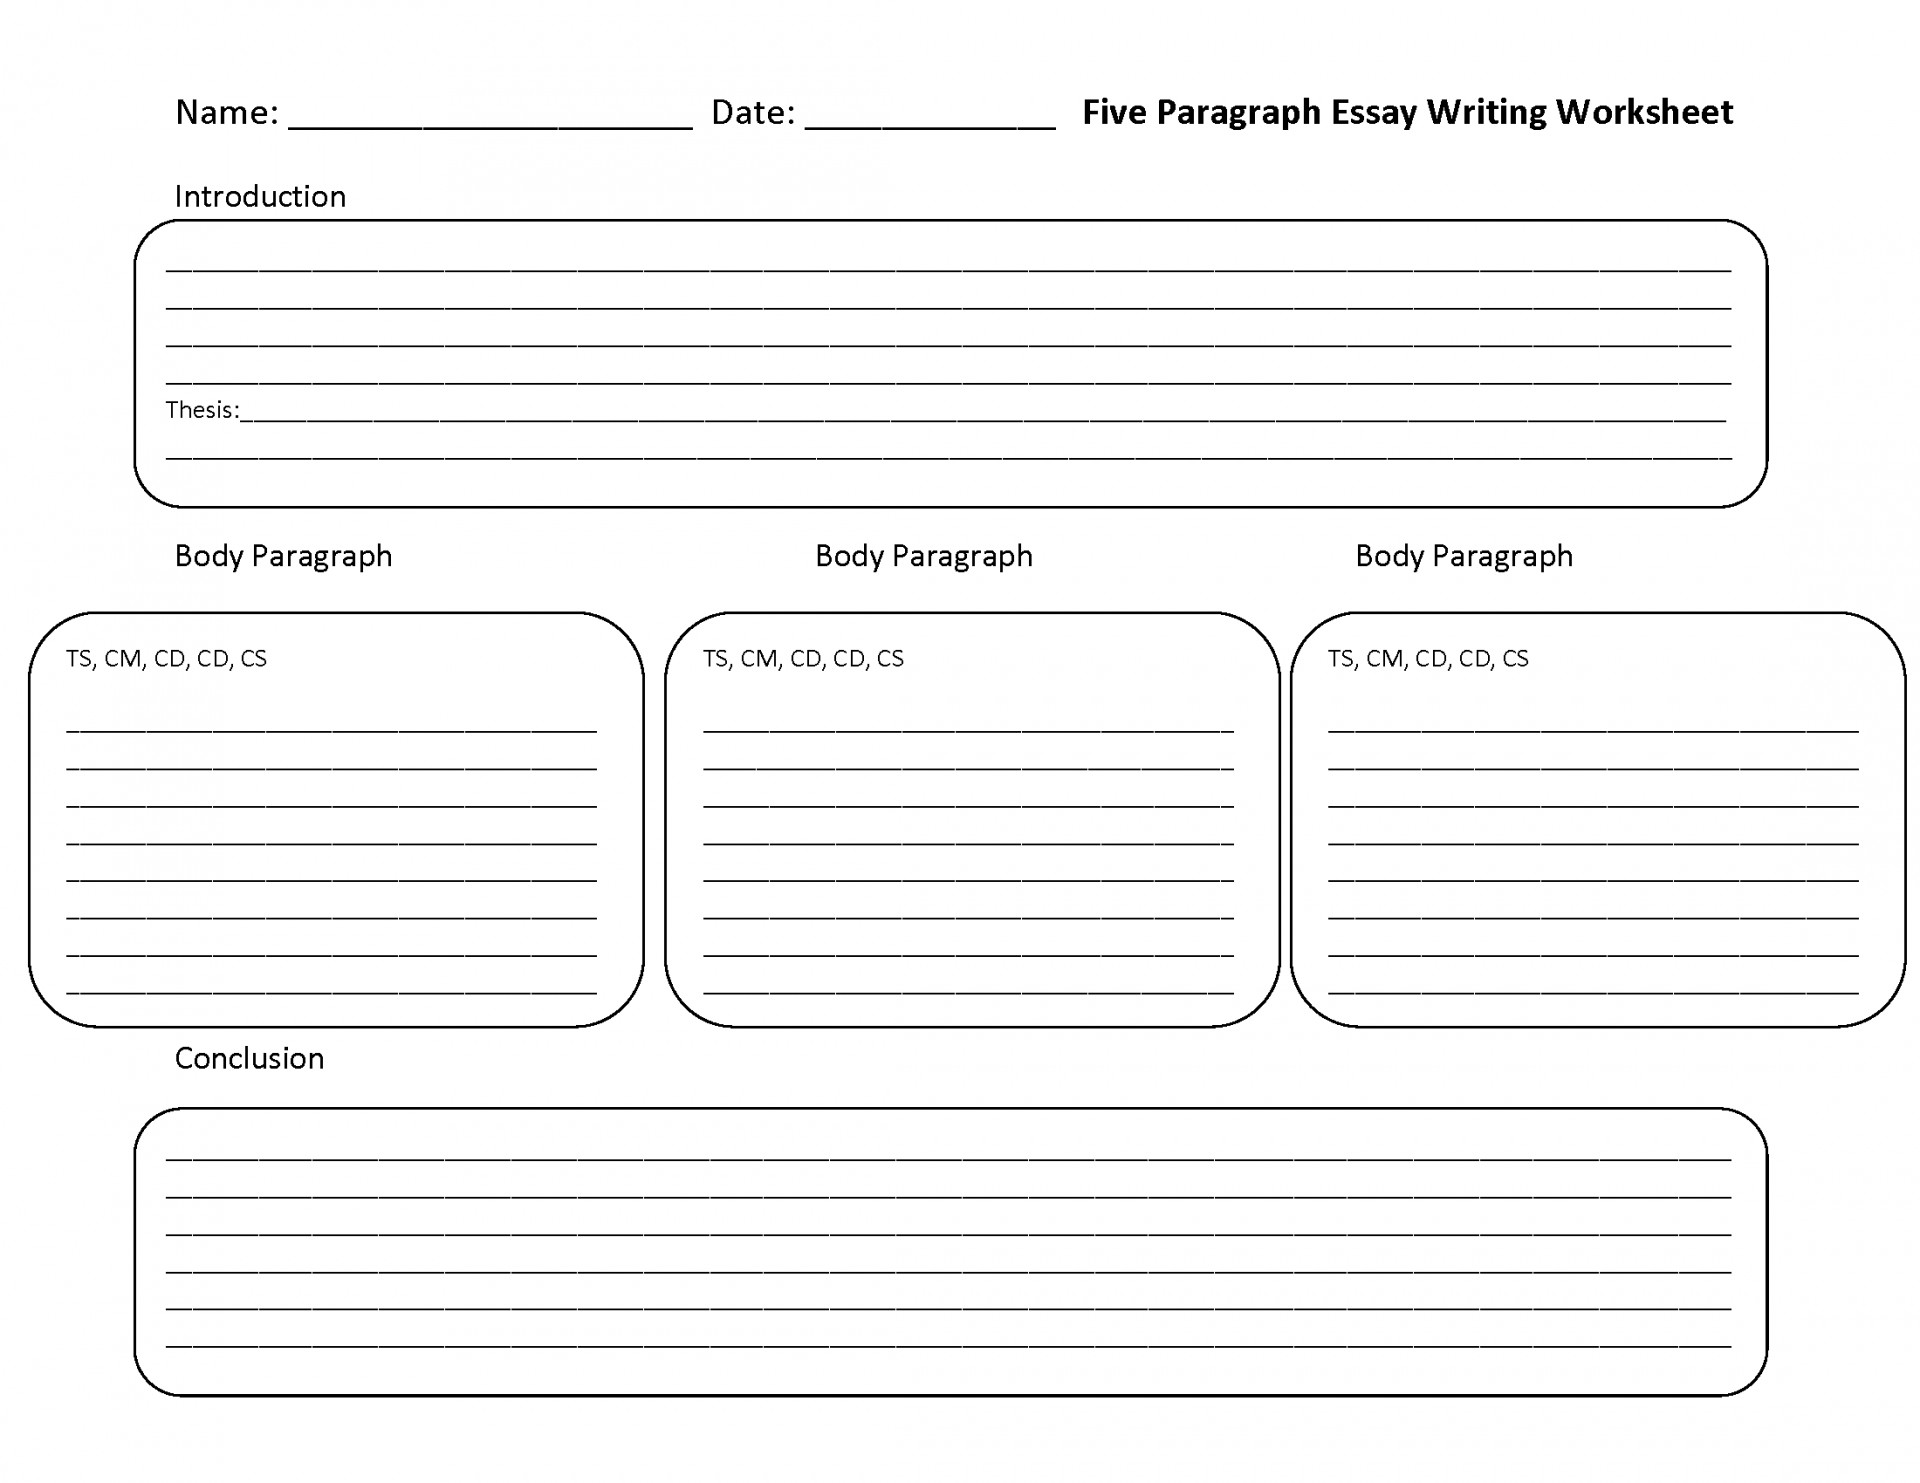 006 Five Paragraph Essay Outline Lines Impressive 5 Template Printable Persuasive 1920